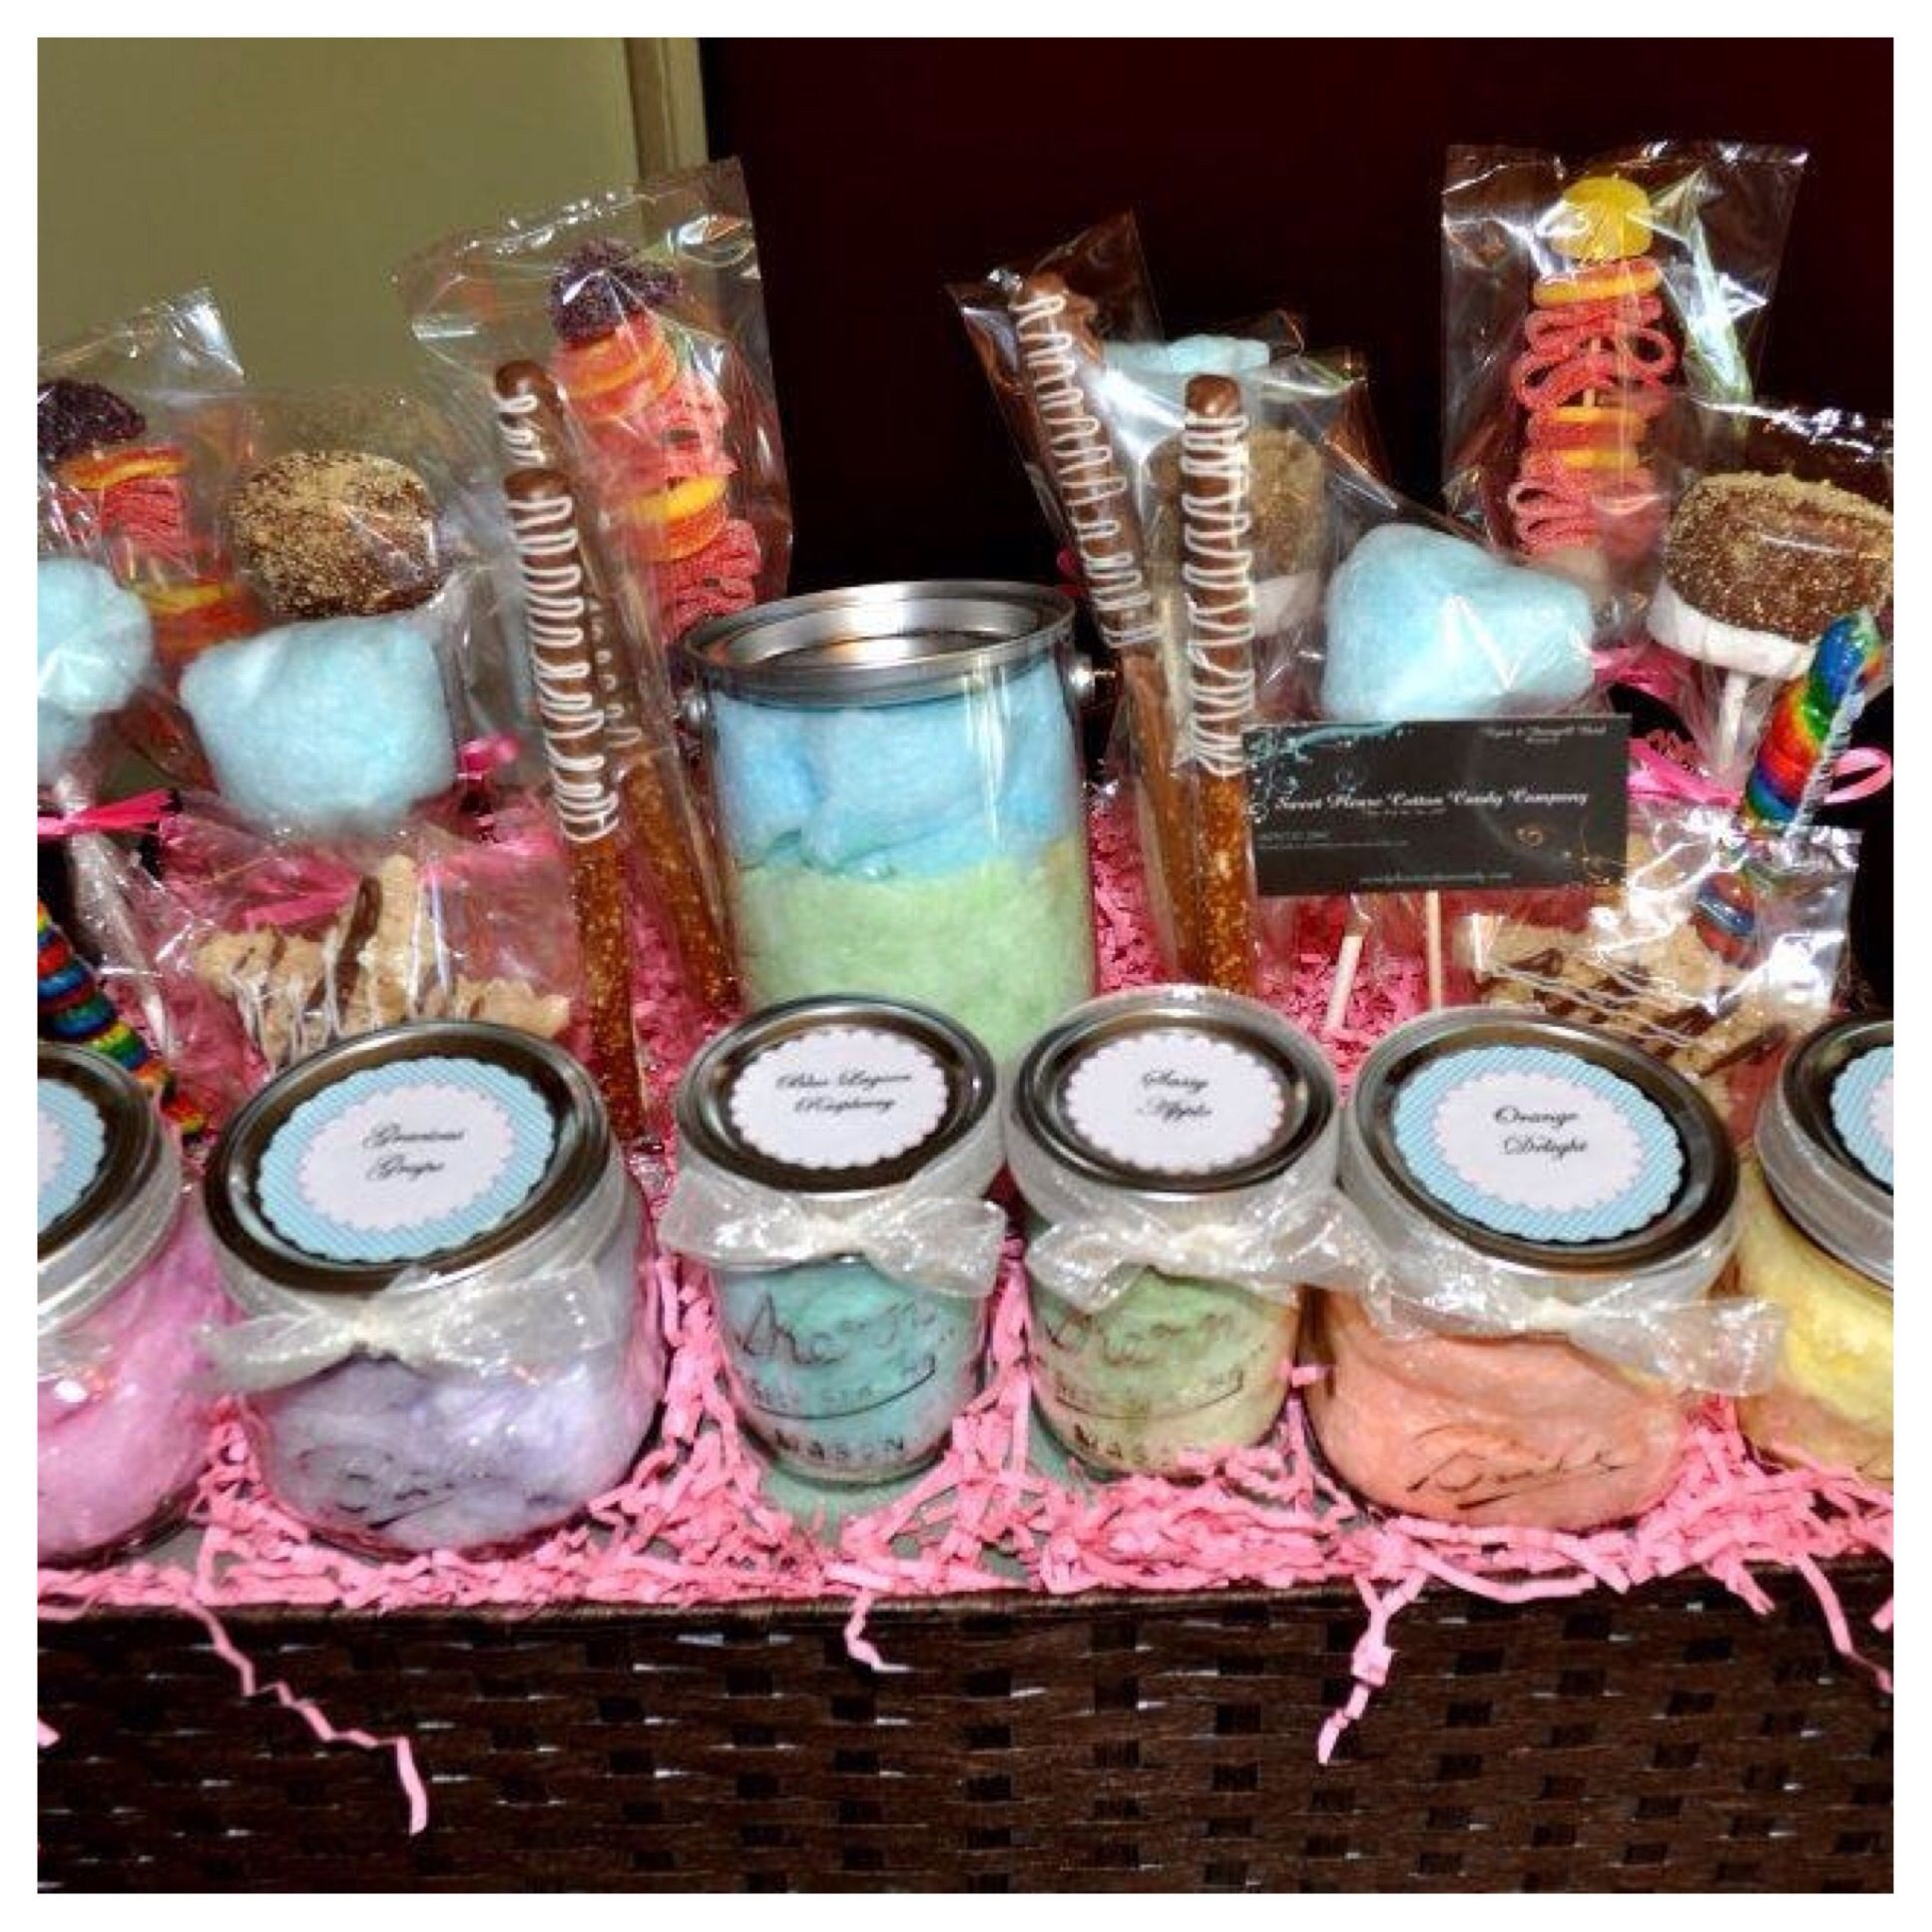 Cotton Candy Gift Basket Www Sweetpleasecottoncandy Com Candy Gift Baskets Candy Gifts Candy